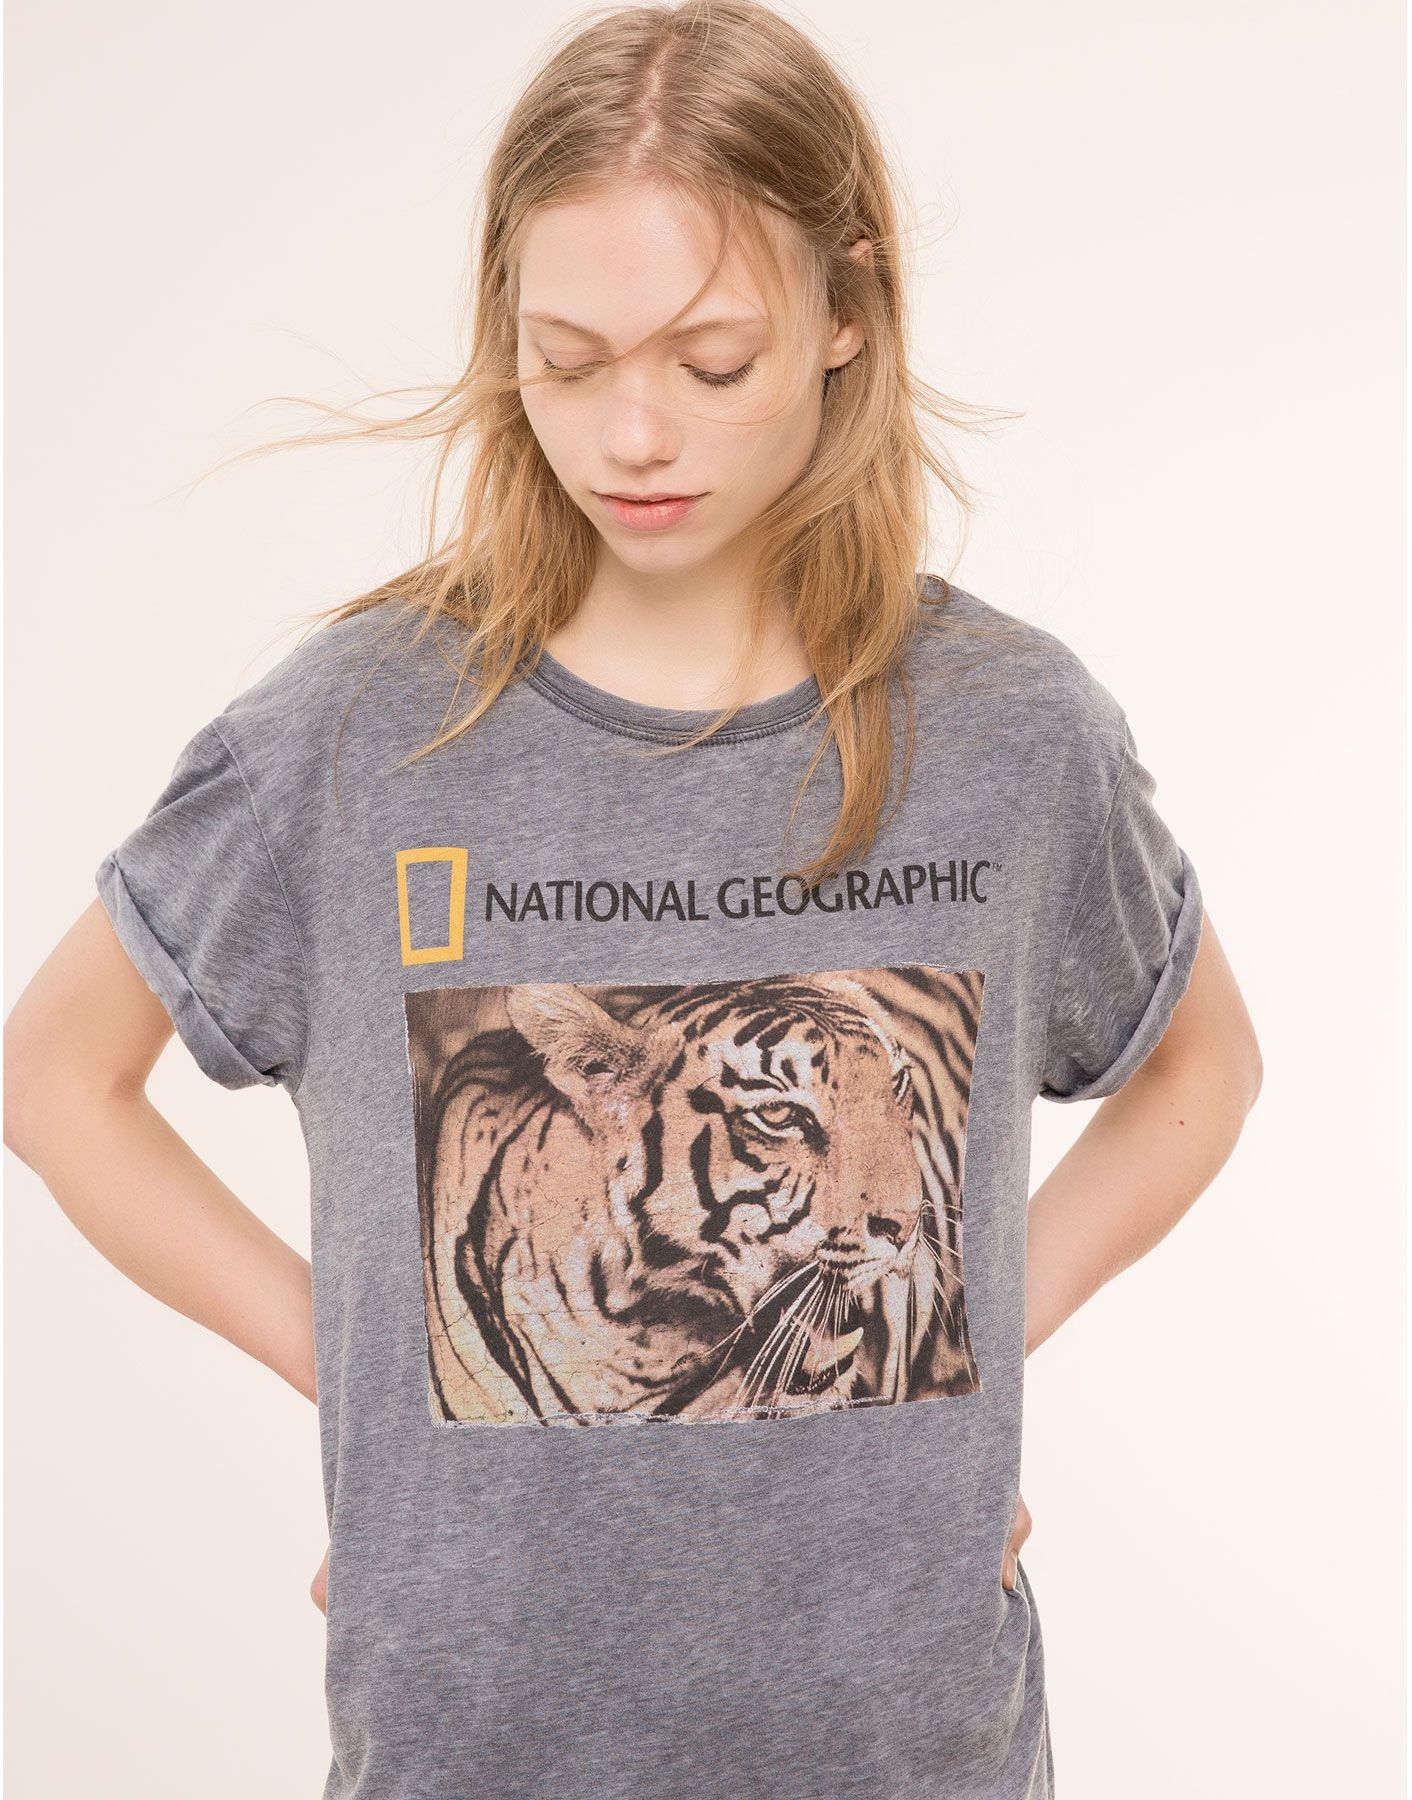 f0263b2791a17d T-SHIRT NATIONAL GEOGRAPHIC - T-SHIRTS E TOPS - MULHER - PULL BEAR Portugal